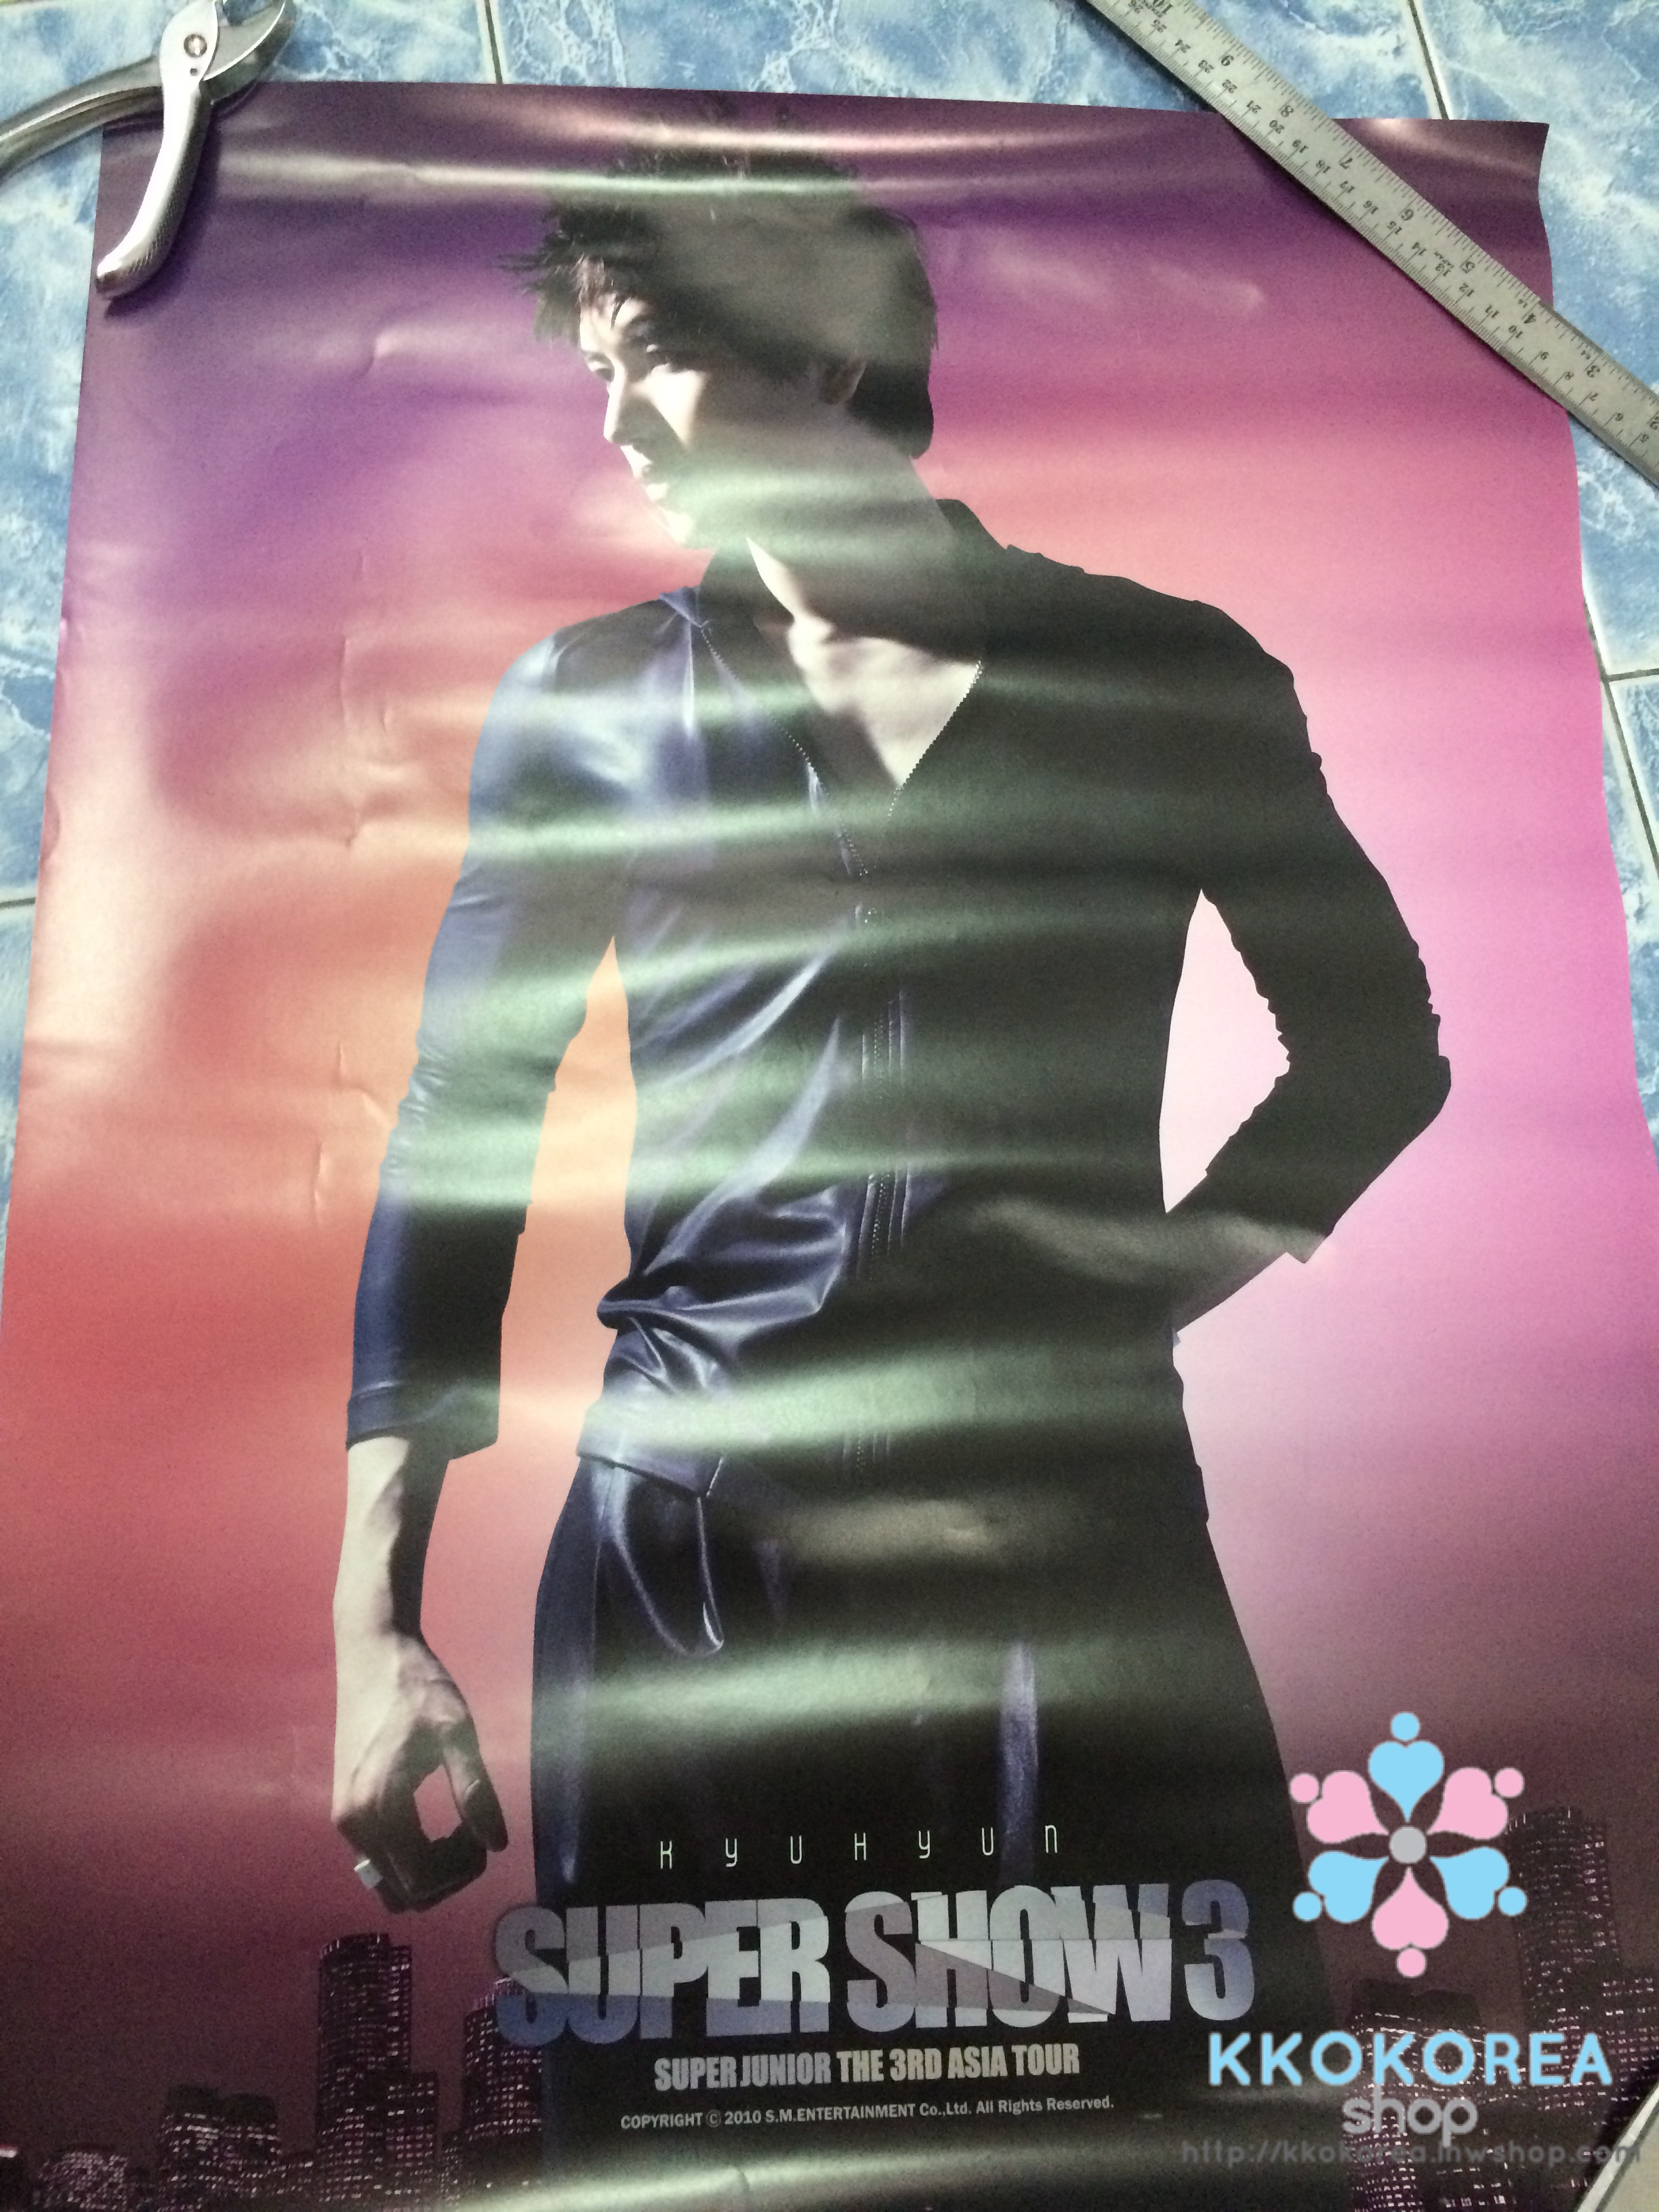 [Poster พร้อมส่ง 1 ใบ] Super Junior : Super Show 3 Official Goods - Poster (KYUHYUN)